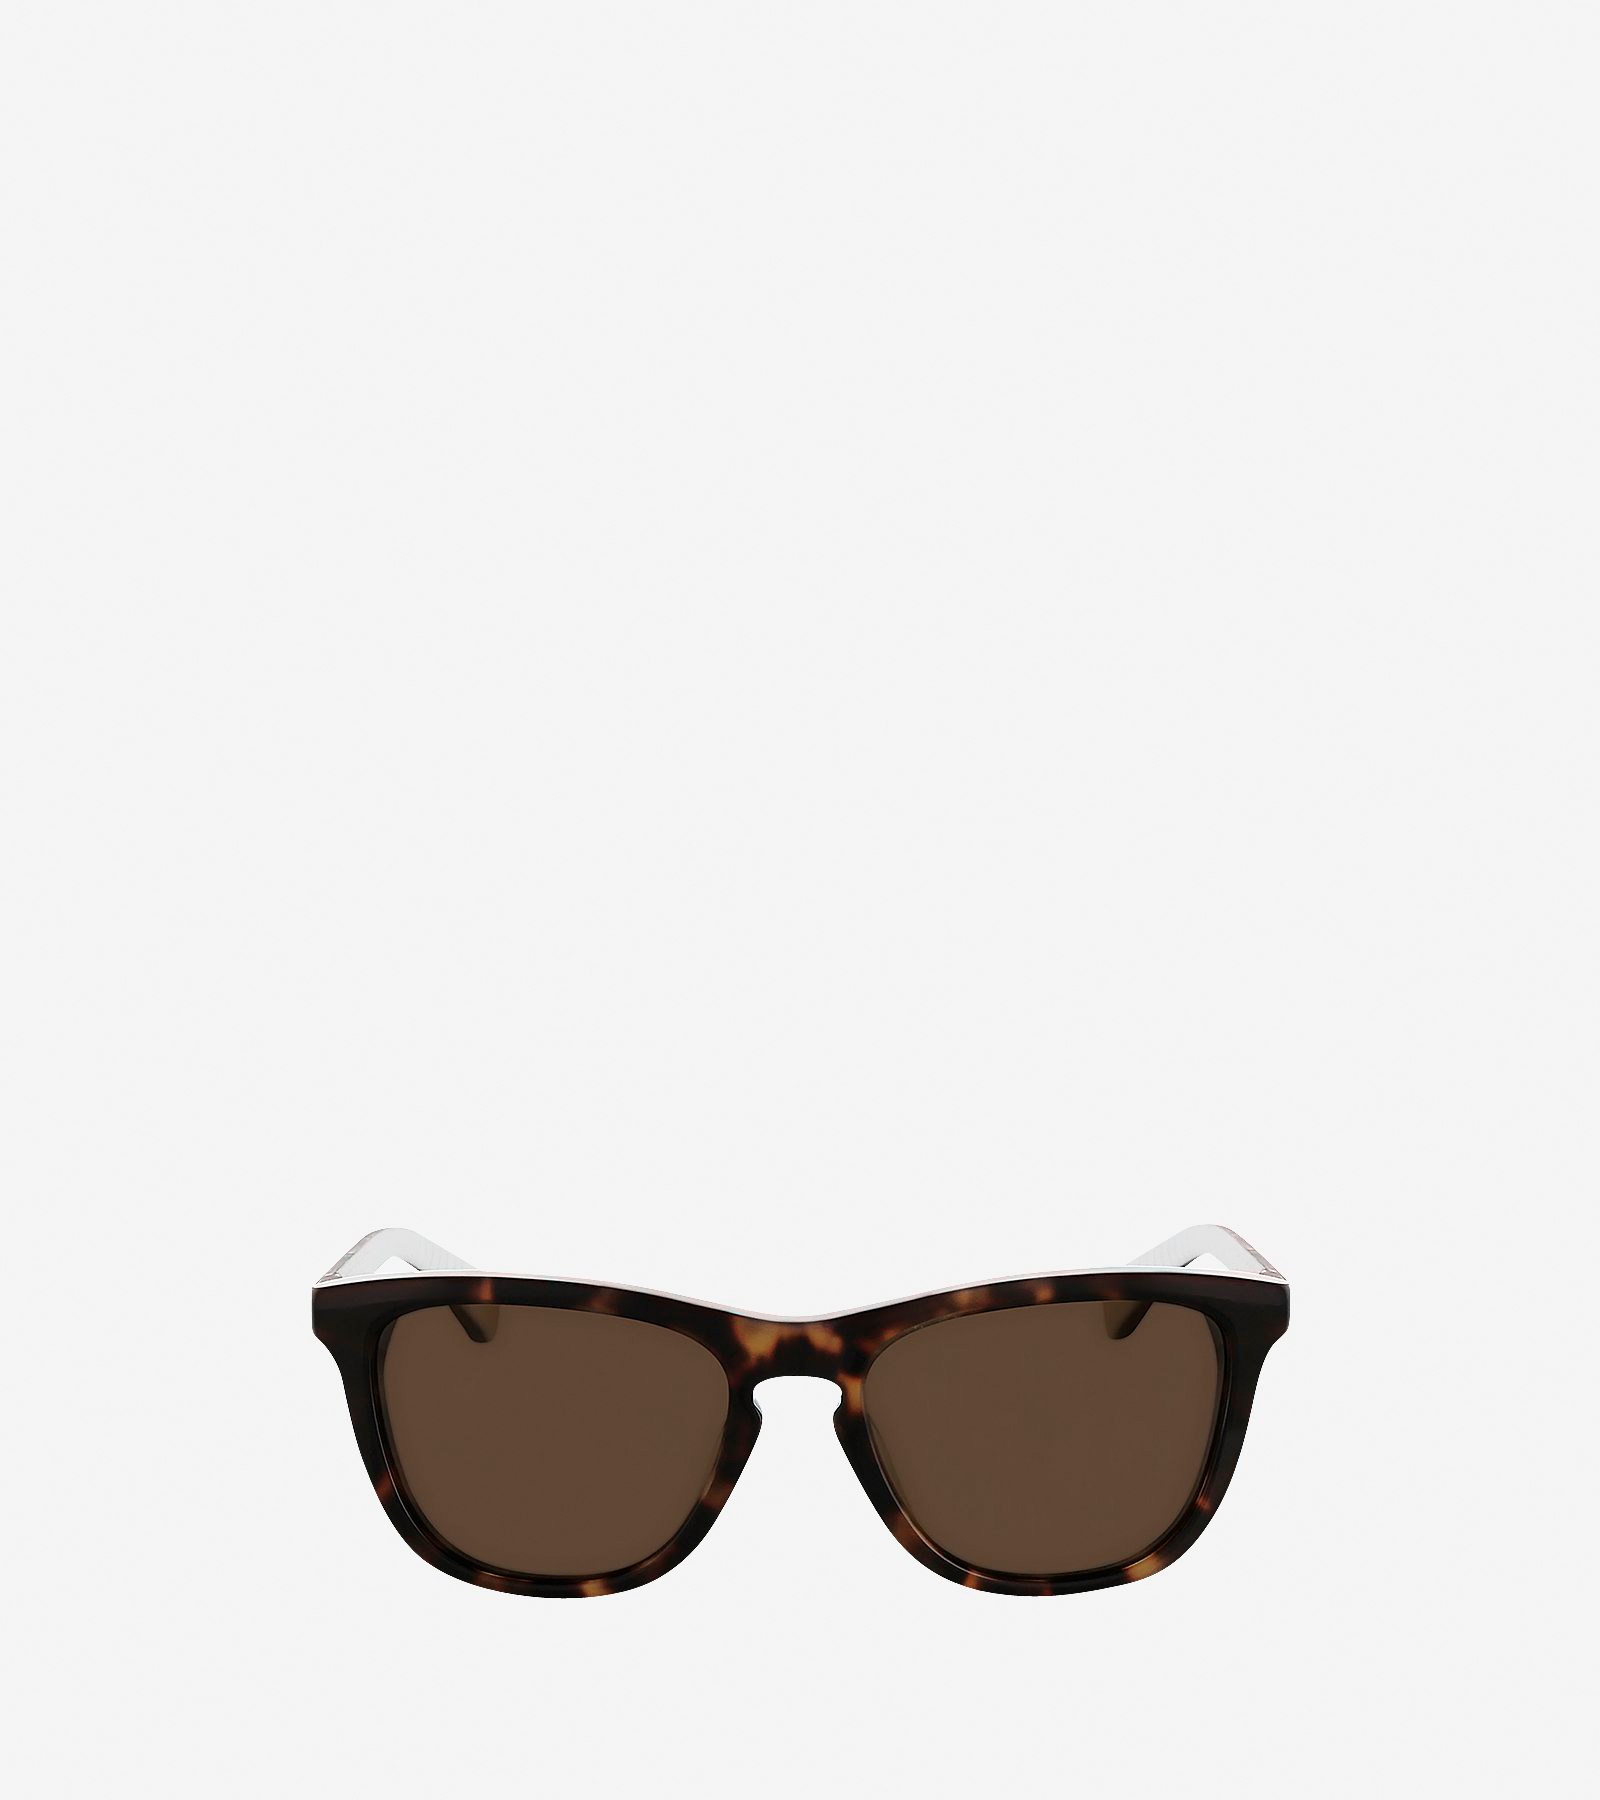 e5a8eb31bef6 Men's ZERØGRAND Oversized Sunglasses in Soft Tortoise | Cole Haan US